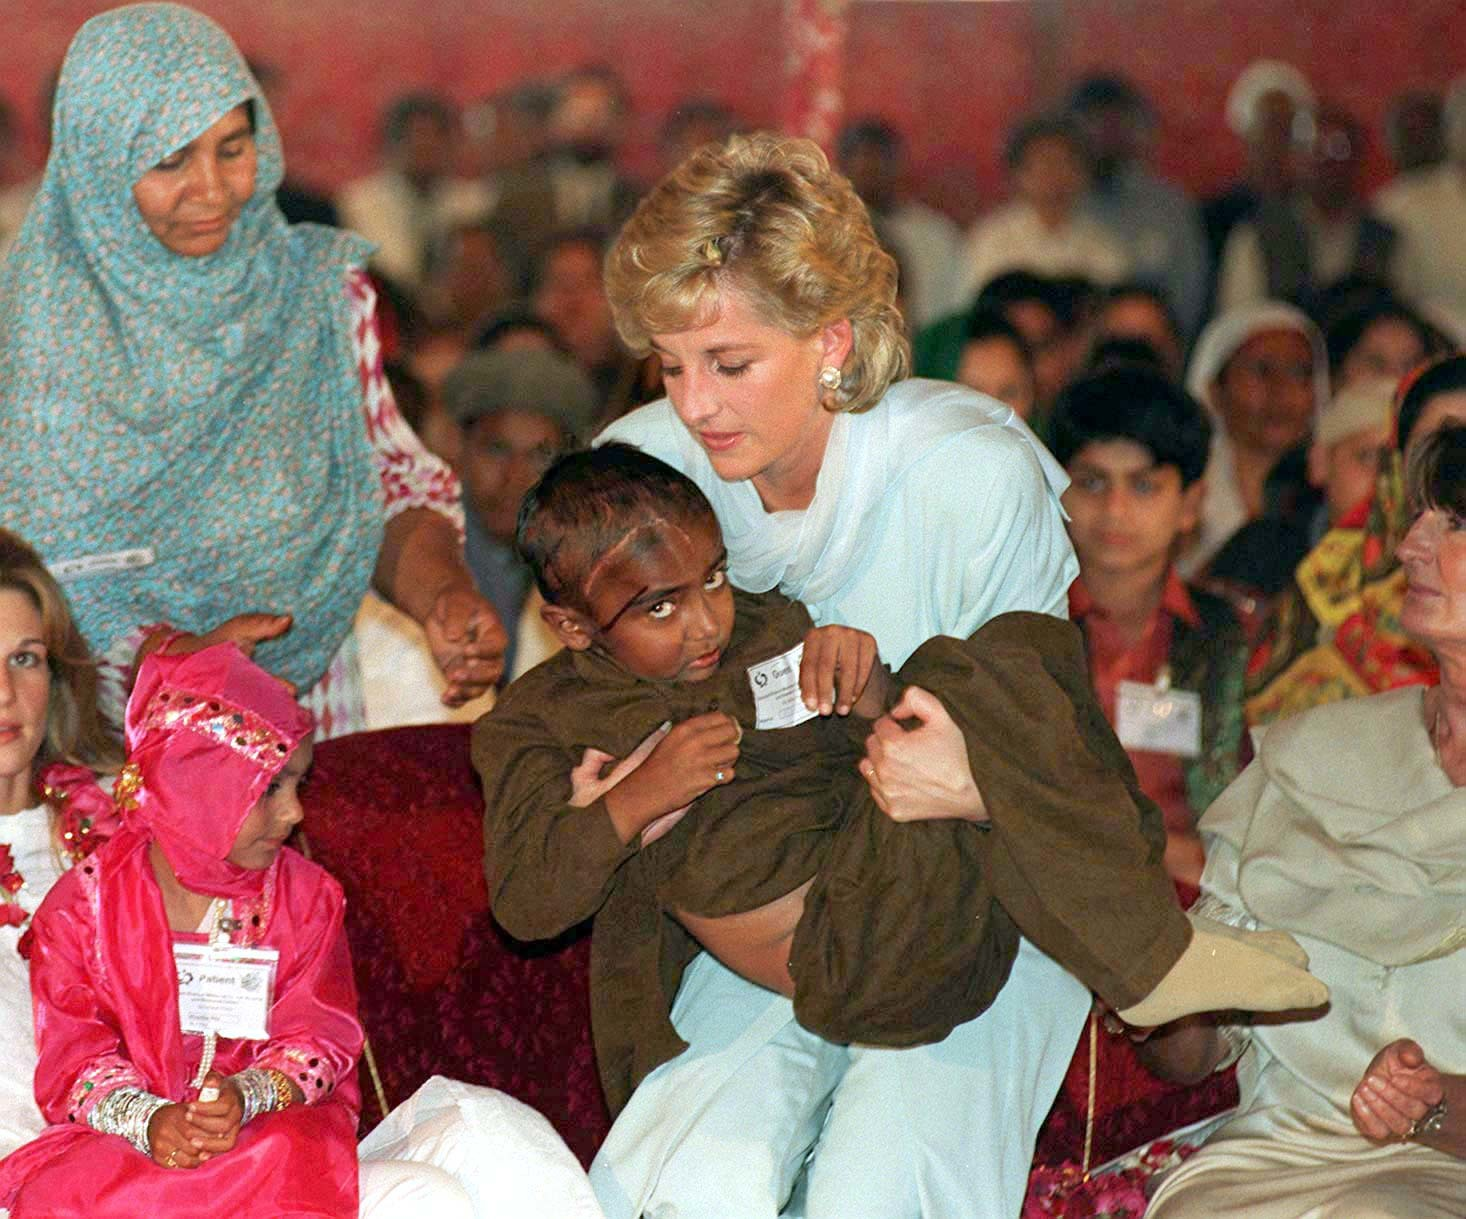 Diana cradles a sick child during a visit to Pakistan in 1996